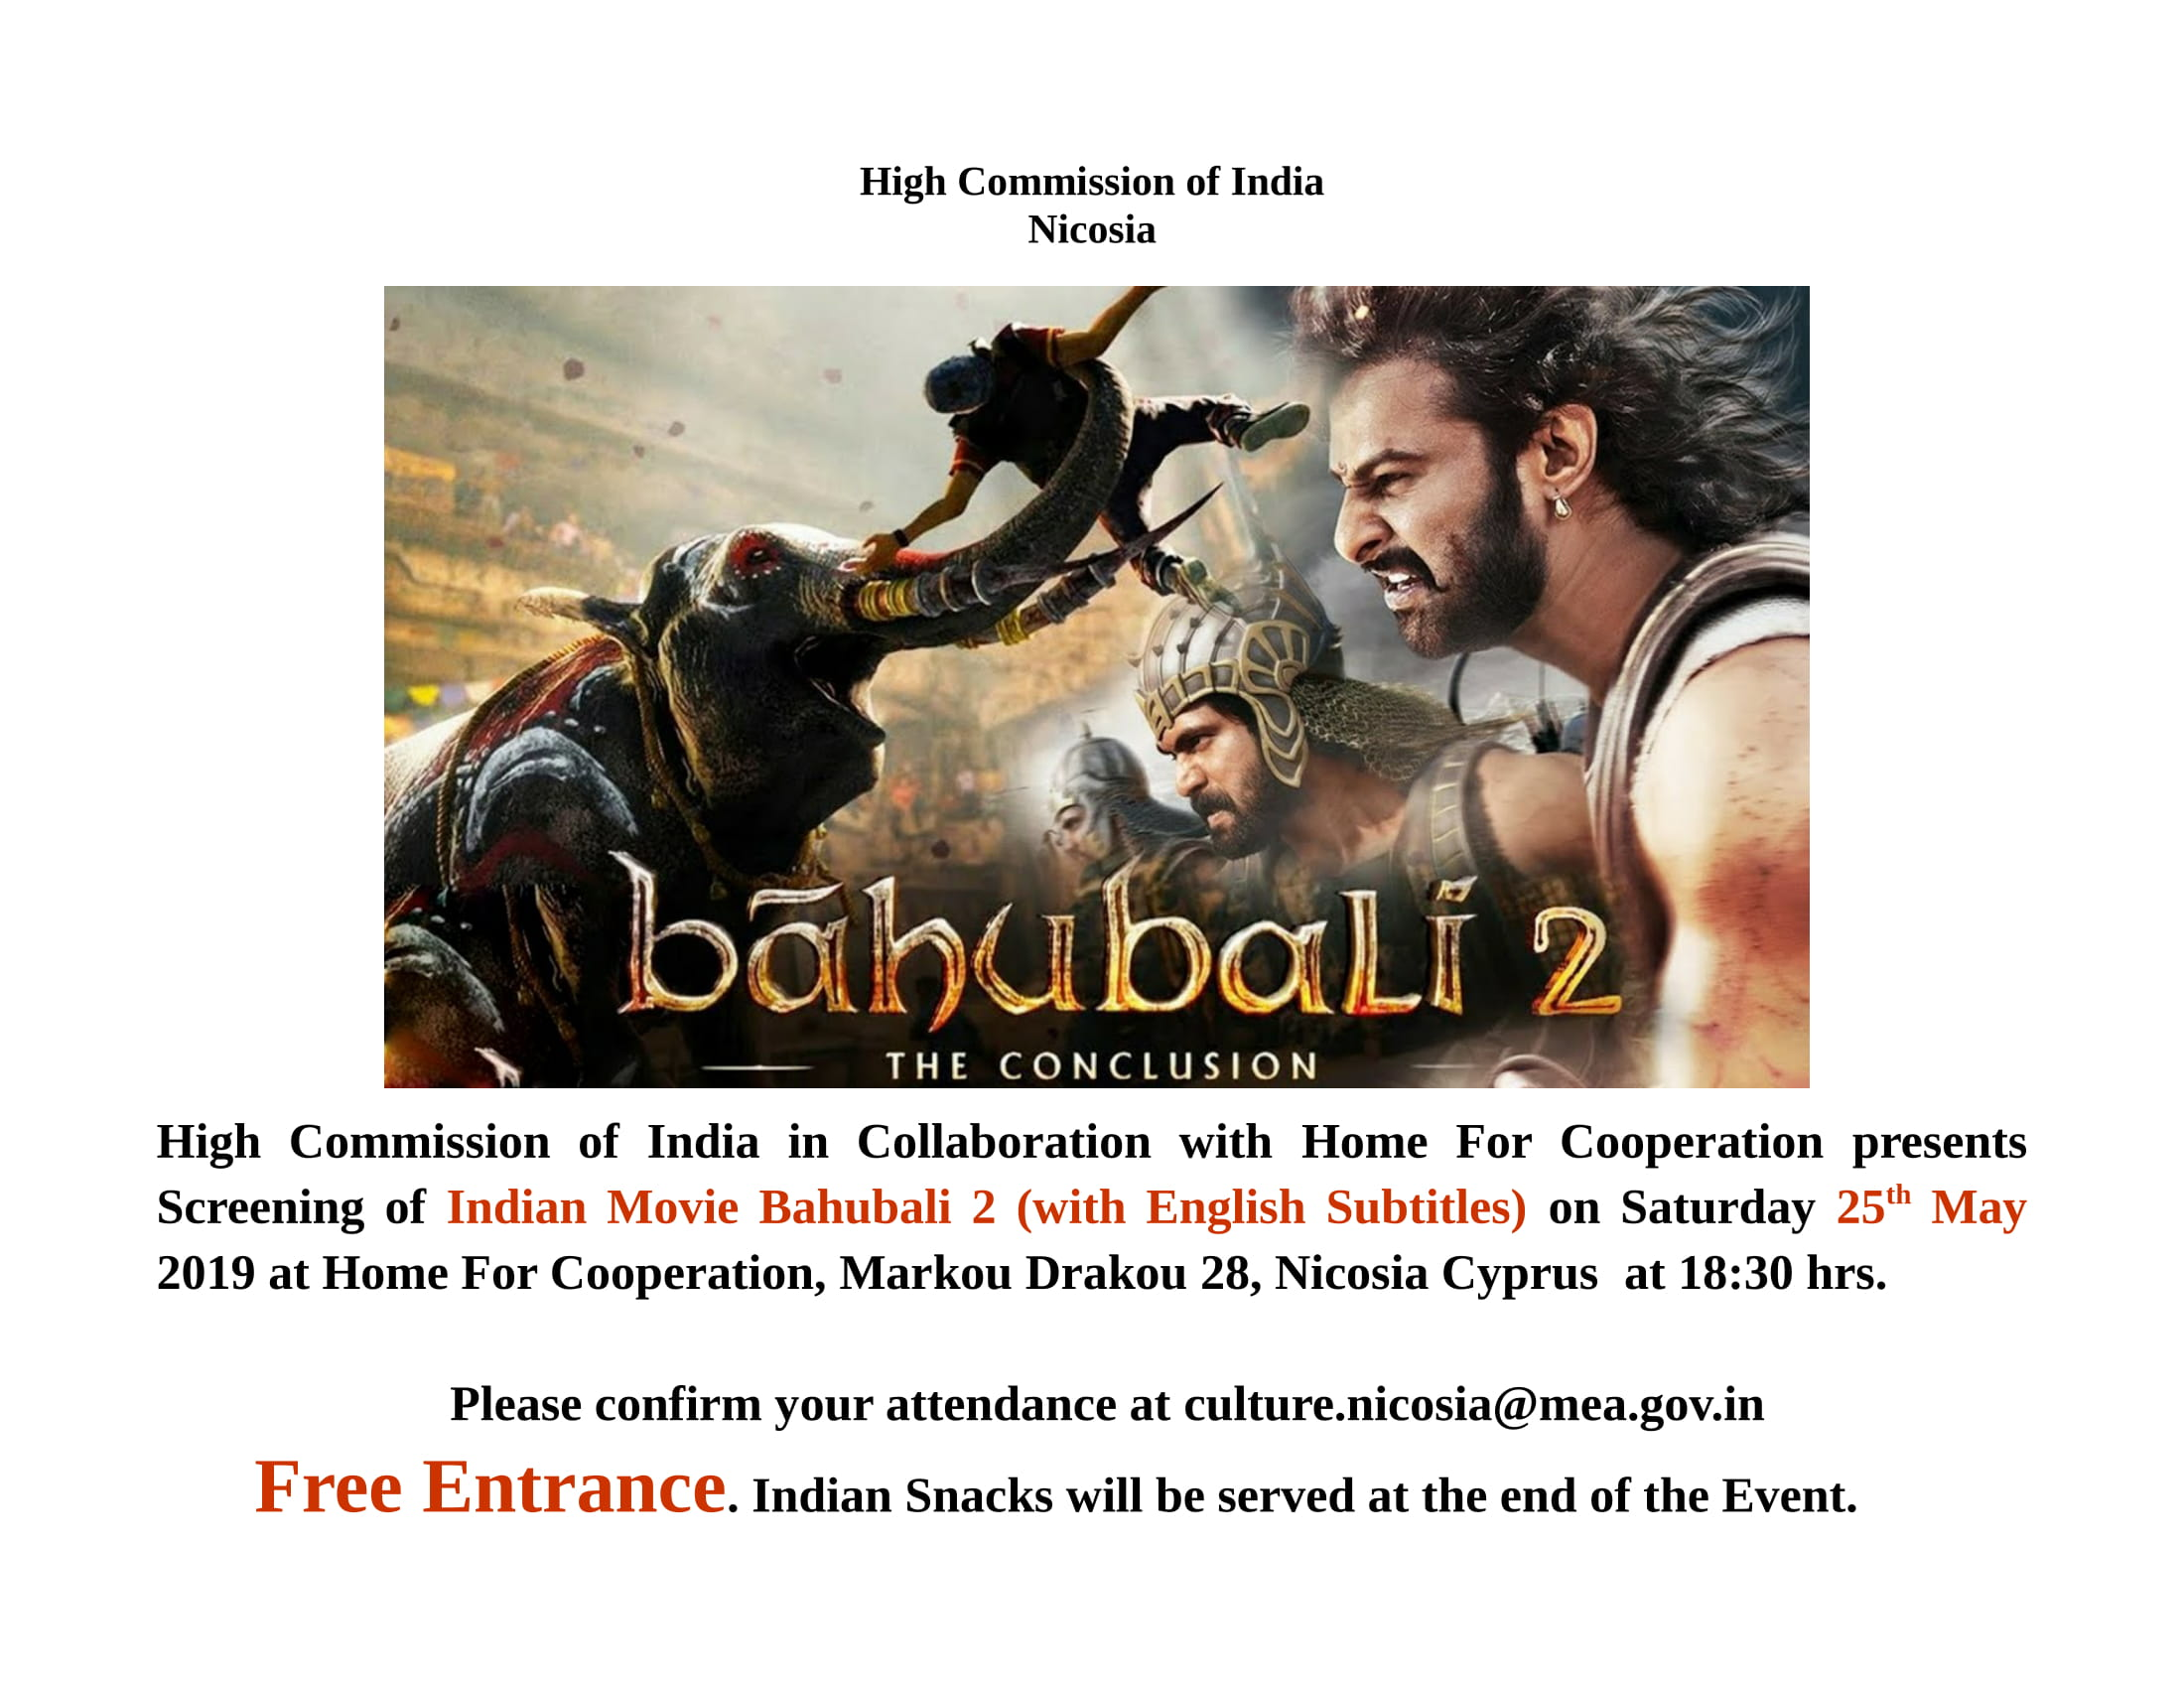 What is New : Screening of Indian Movie Bahubali 2 (with